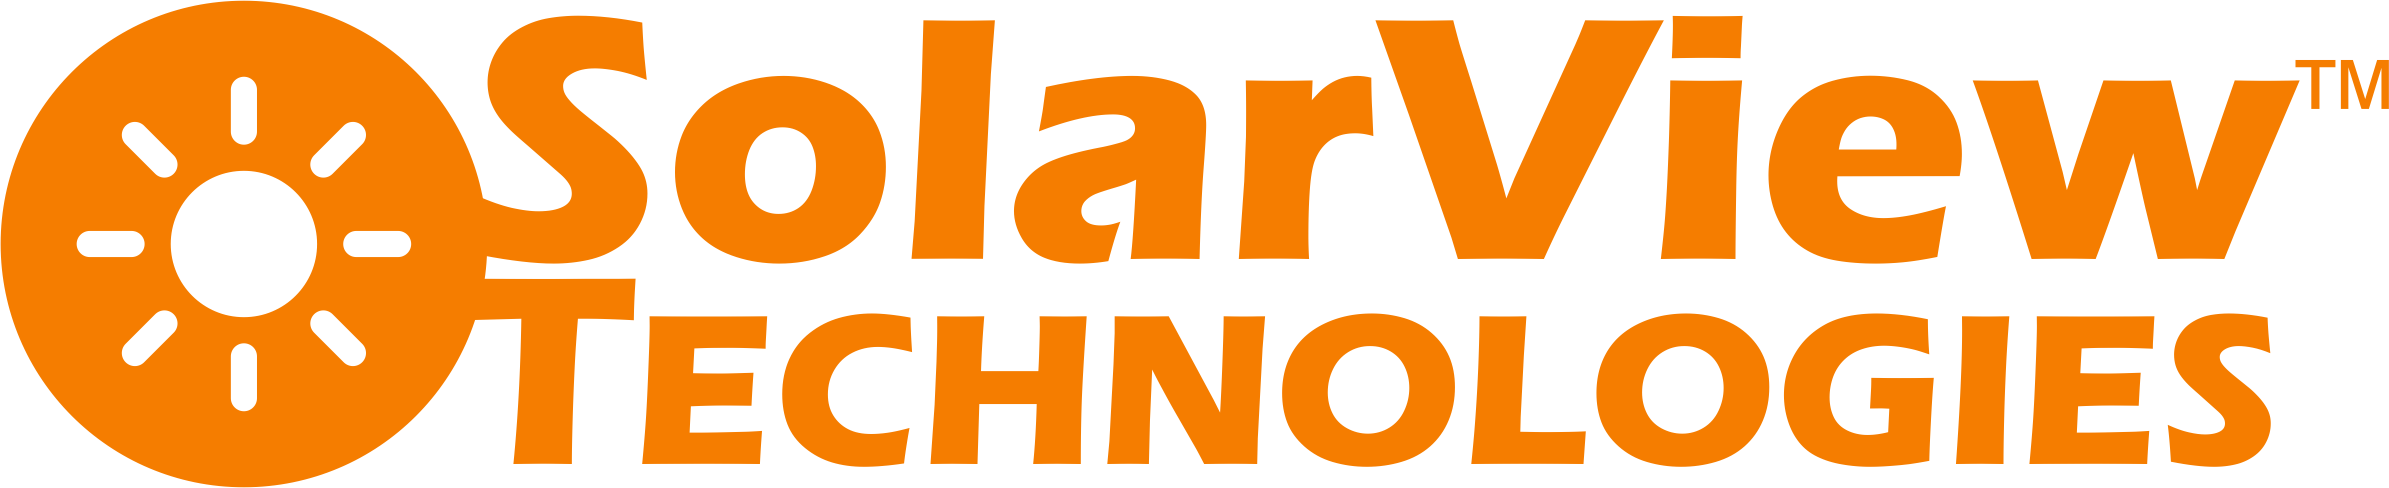 SolarView Technologies